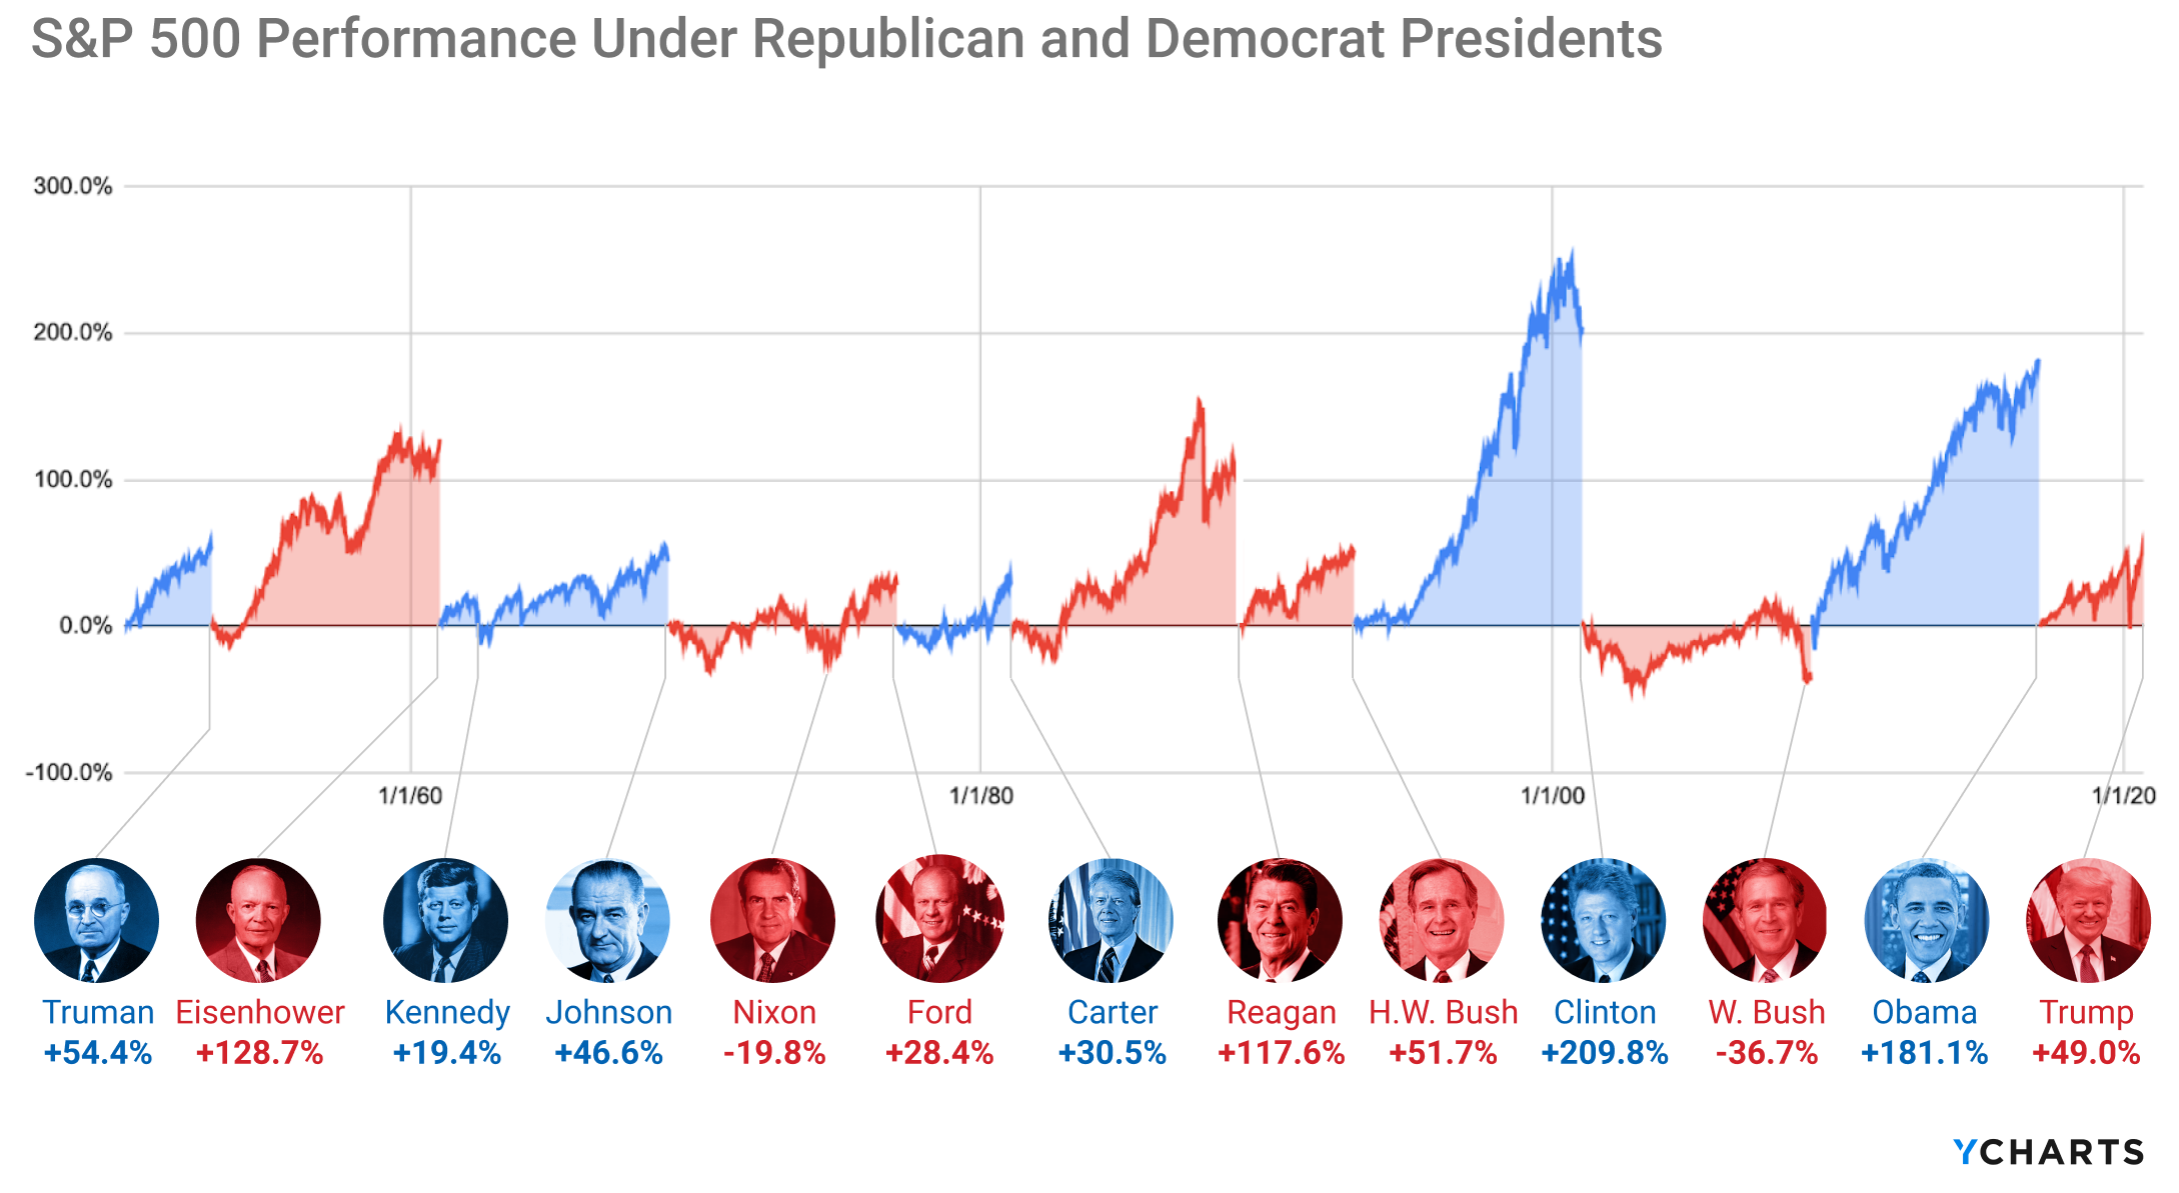 S&P 500 Performance Under Different Presidents